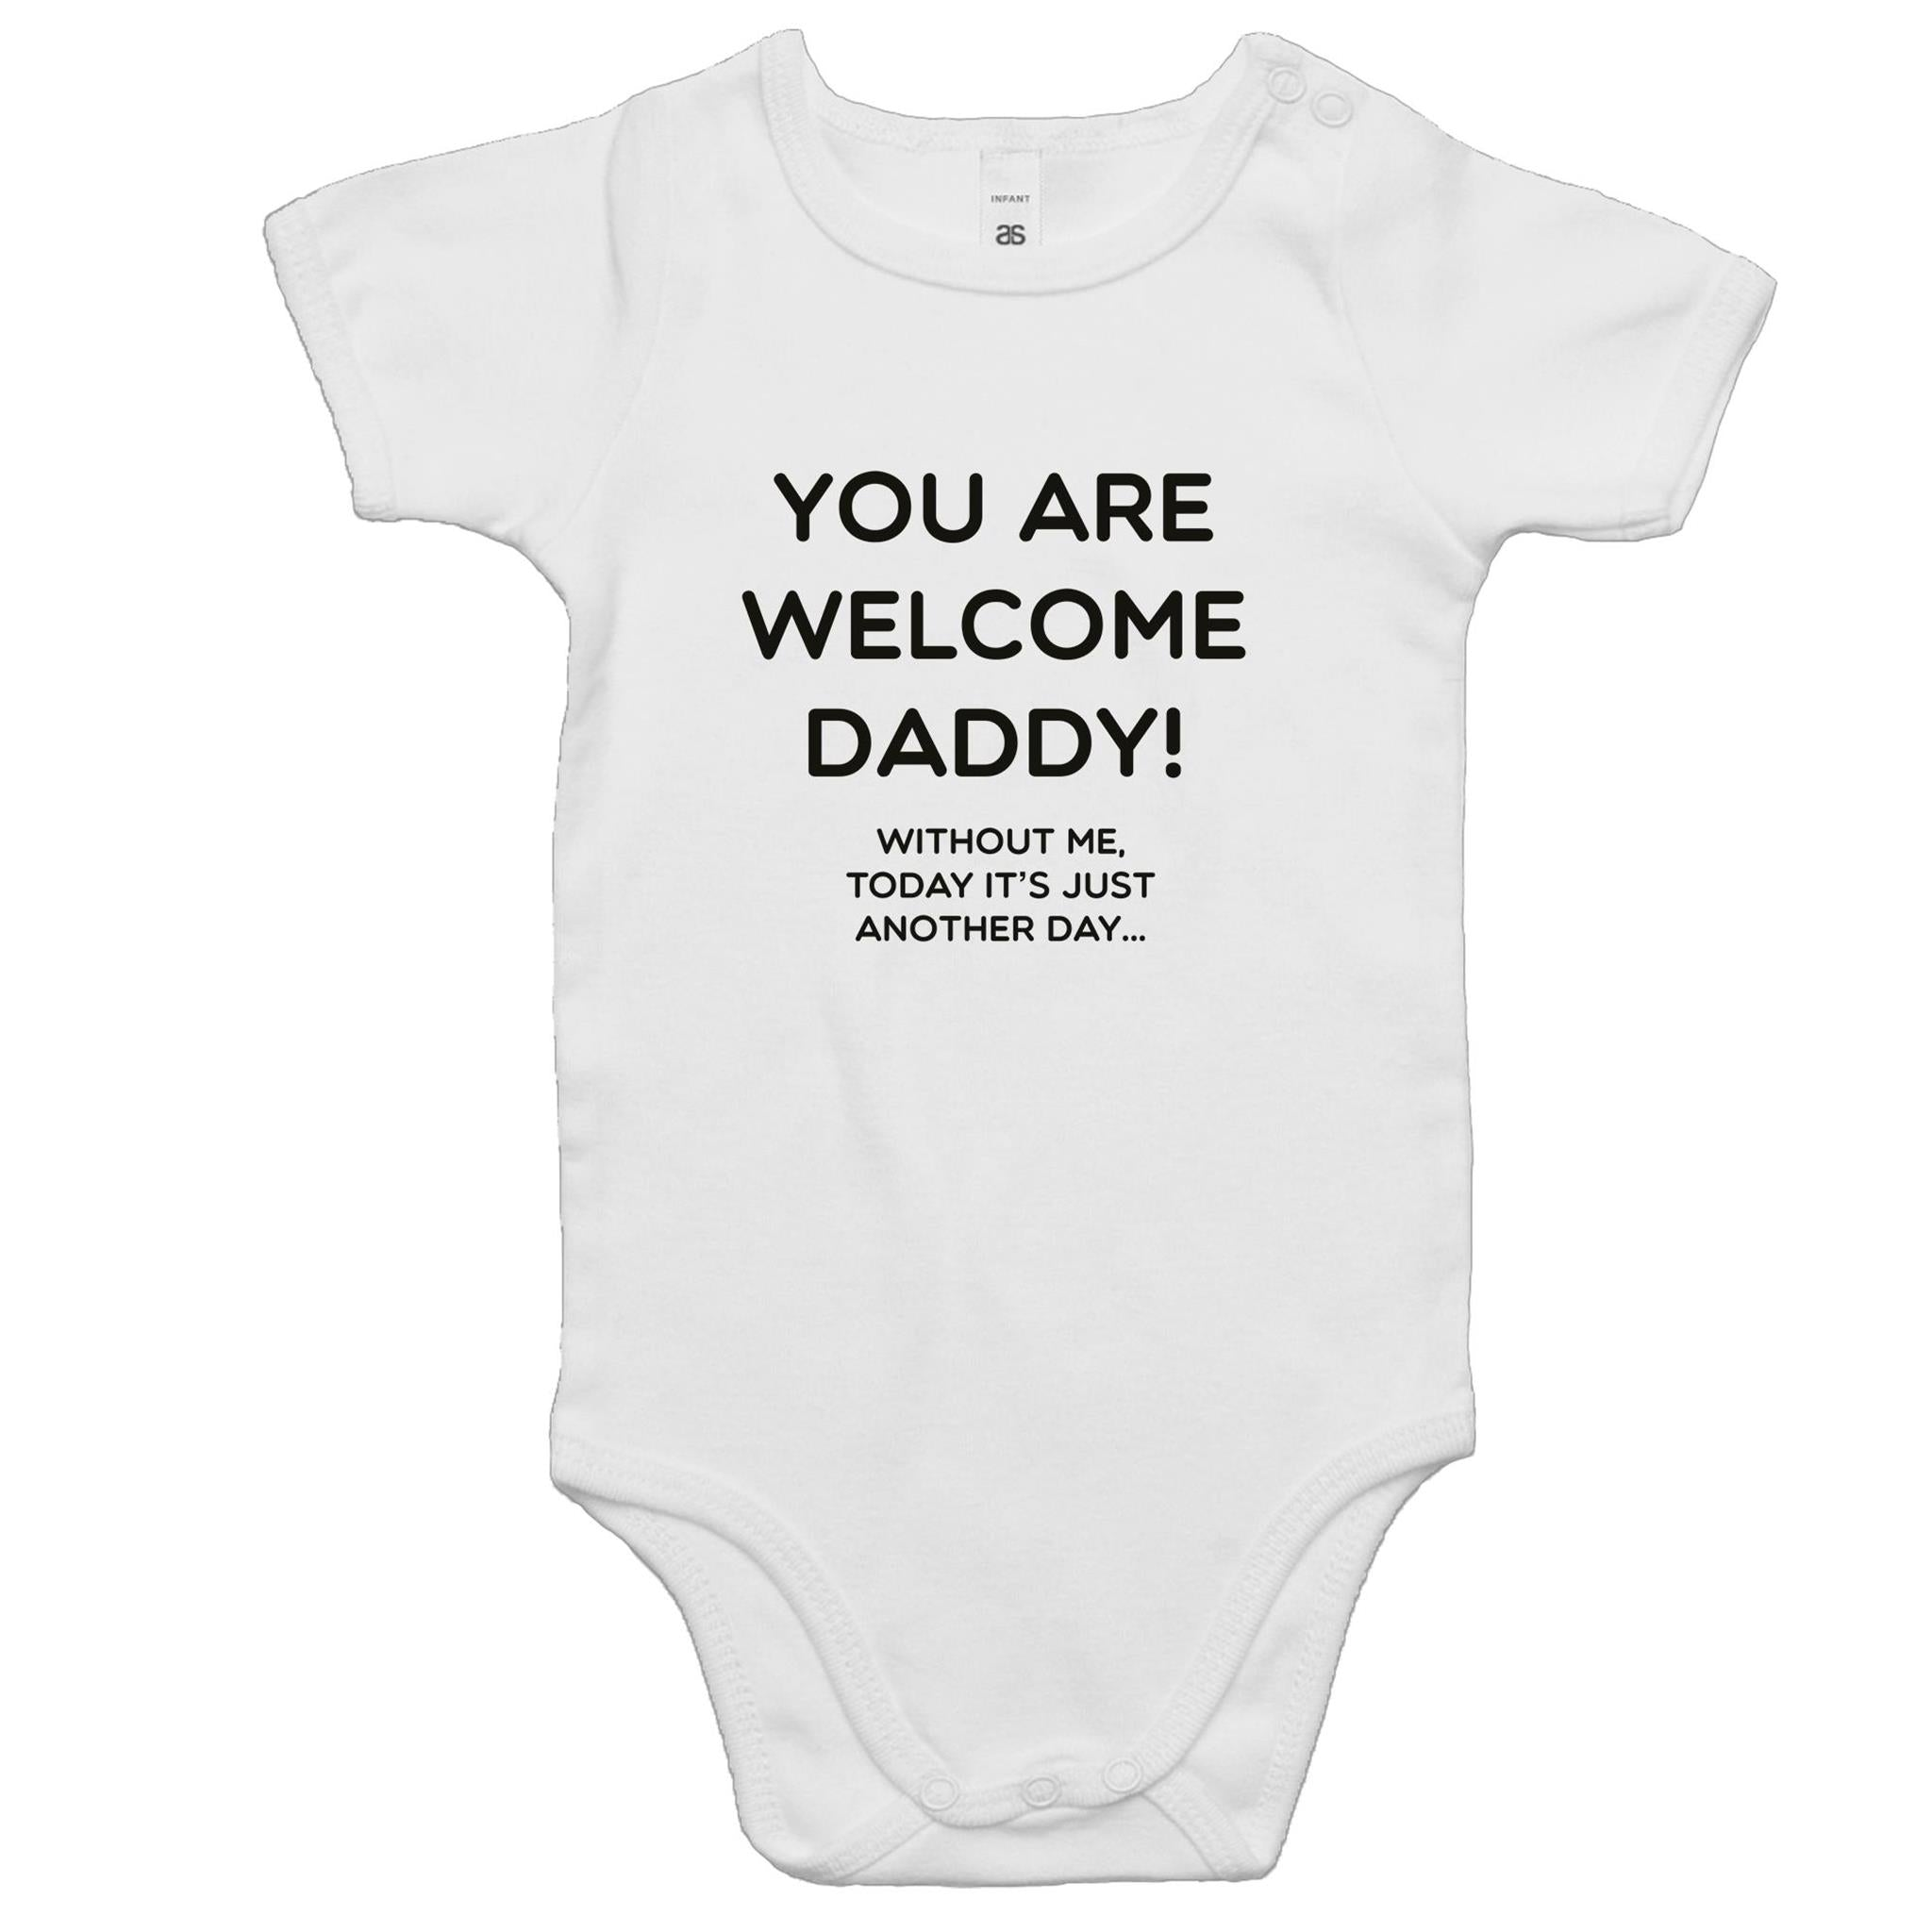 Father's Day gift - You are welcome Baby Onesie Romper (0-24 months)